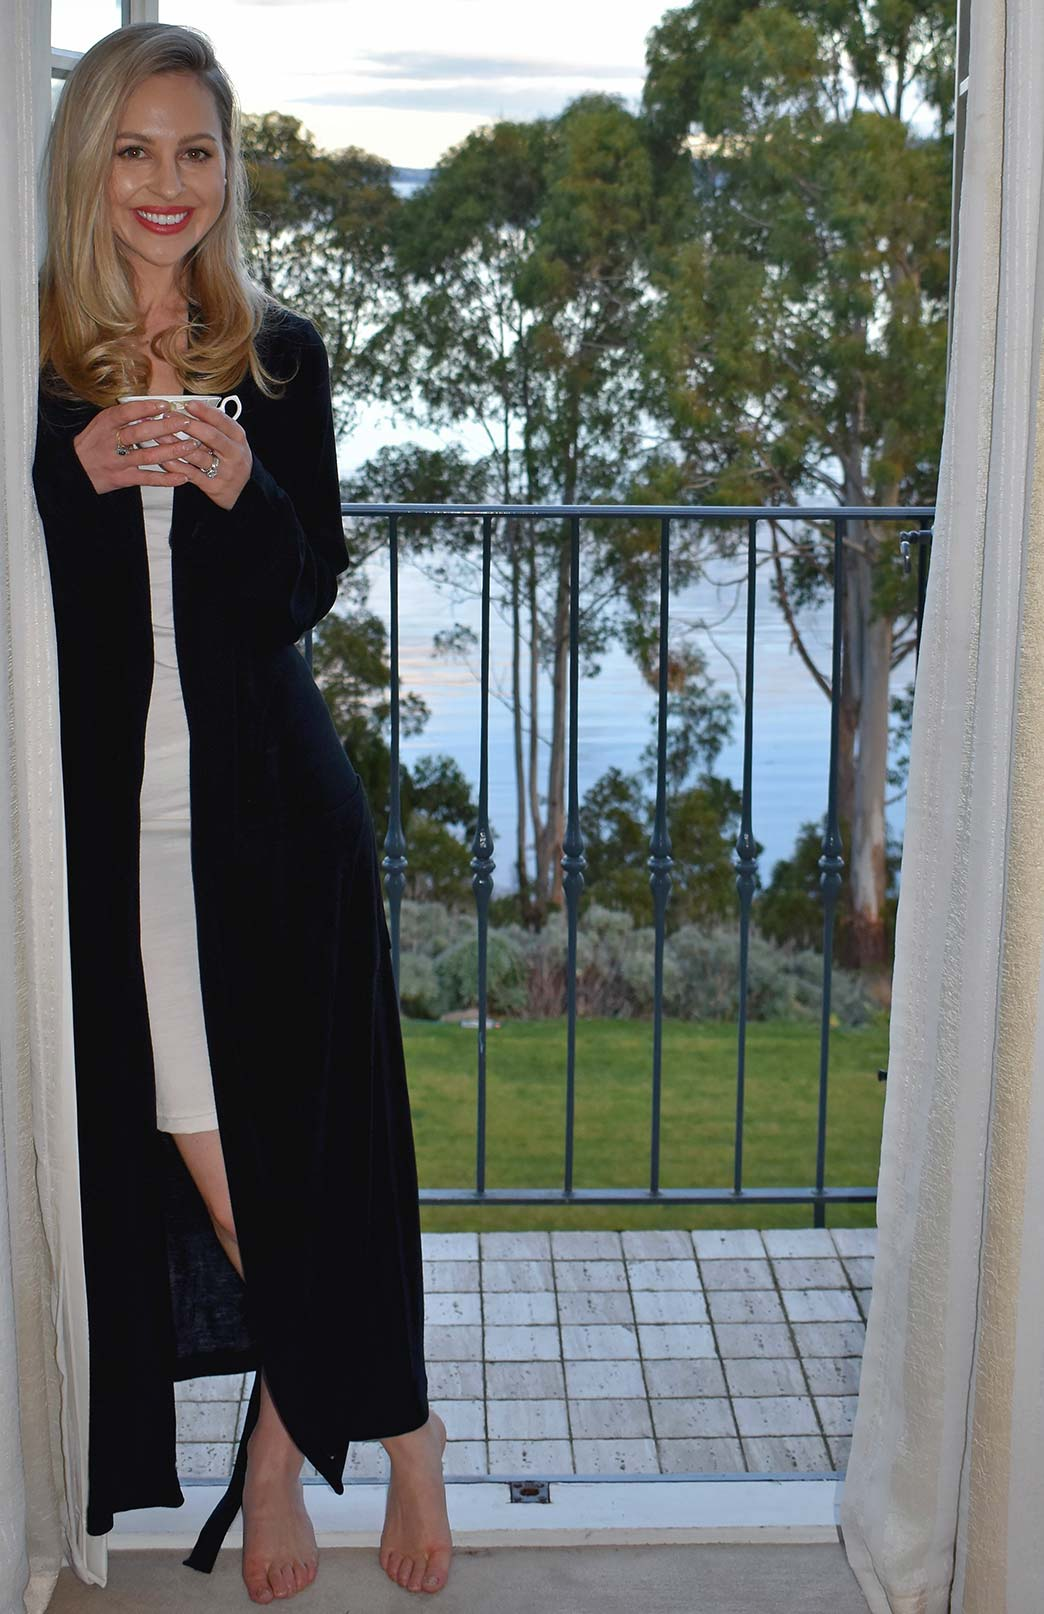 Dressing Gown - Women's Midnight Black Superfine Merino Wool Dressing Gown with Tie and Side Pockets - Smitten Merino Tasmania Australia